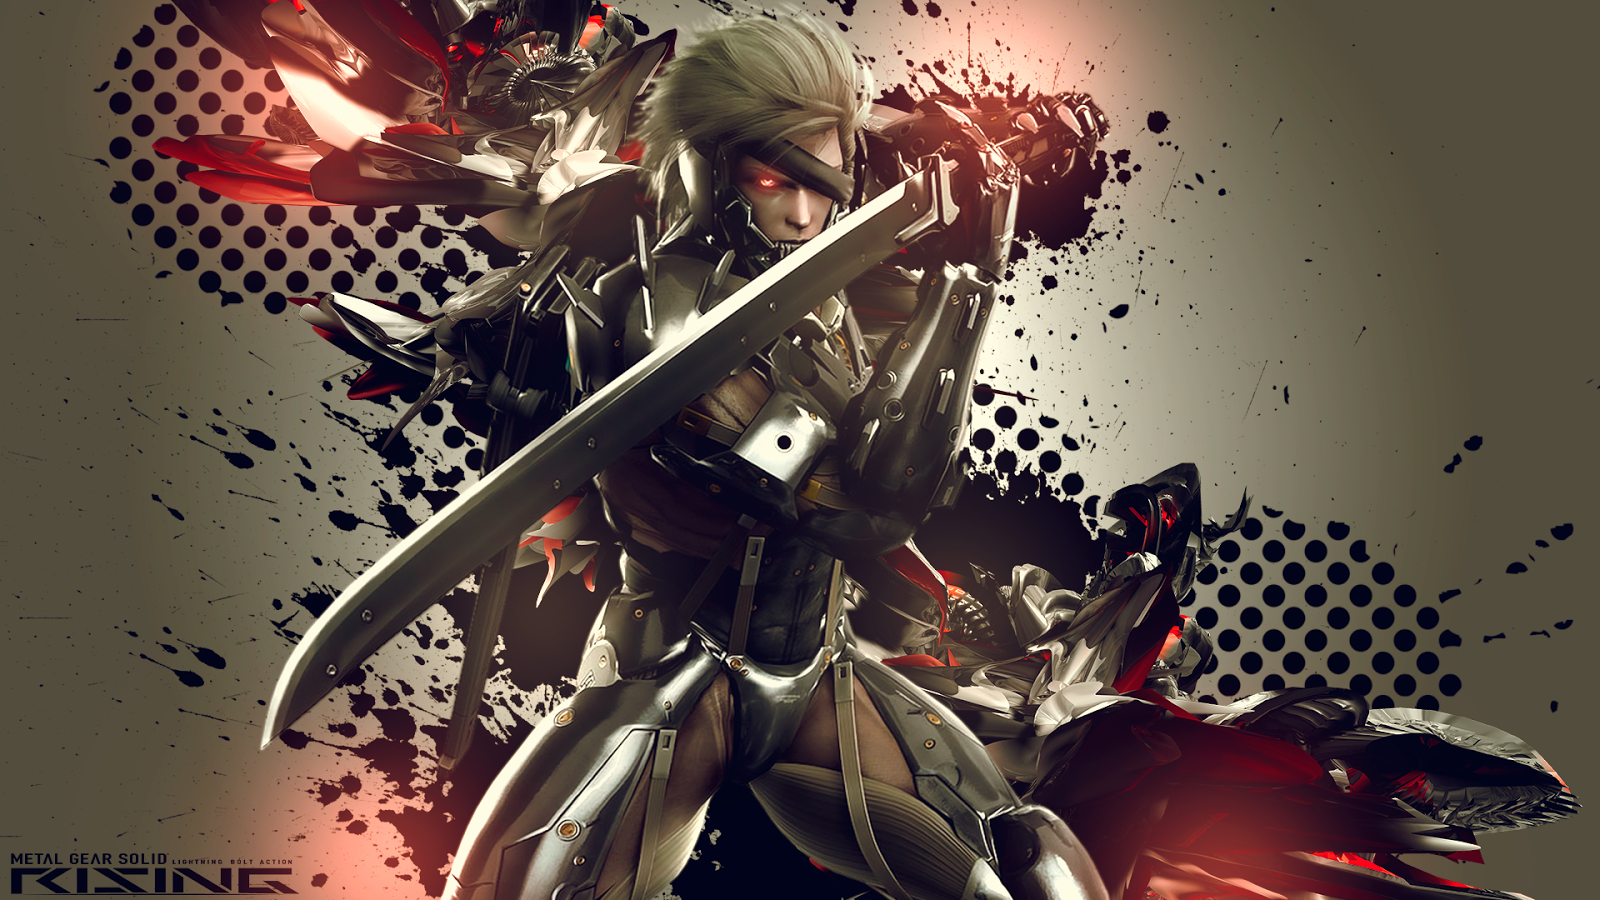 42 Hd Raiden Wallpaper On Wallpapersafari: WallpapersKu: Metal Gear Rising: Revengeance Wallpapers+Themes